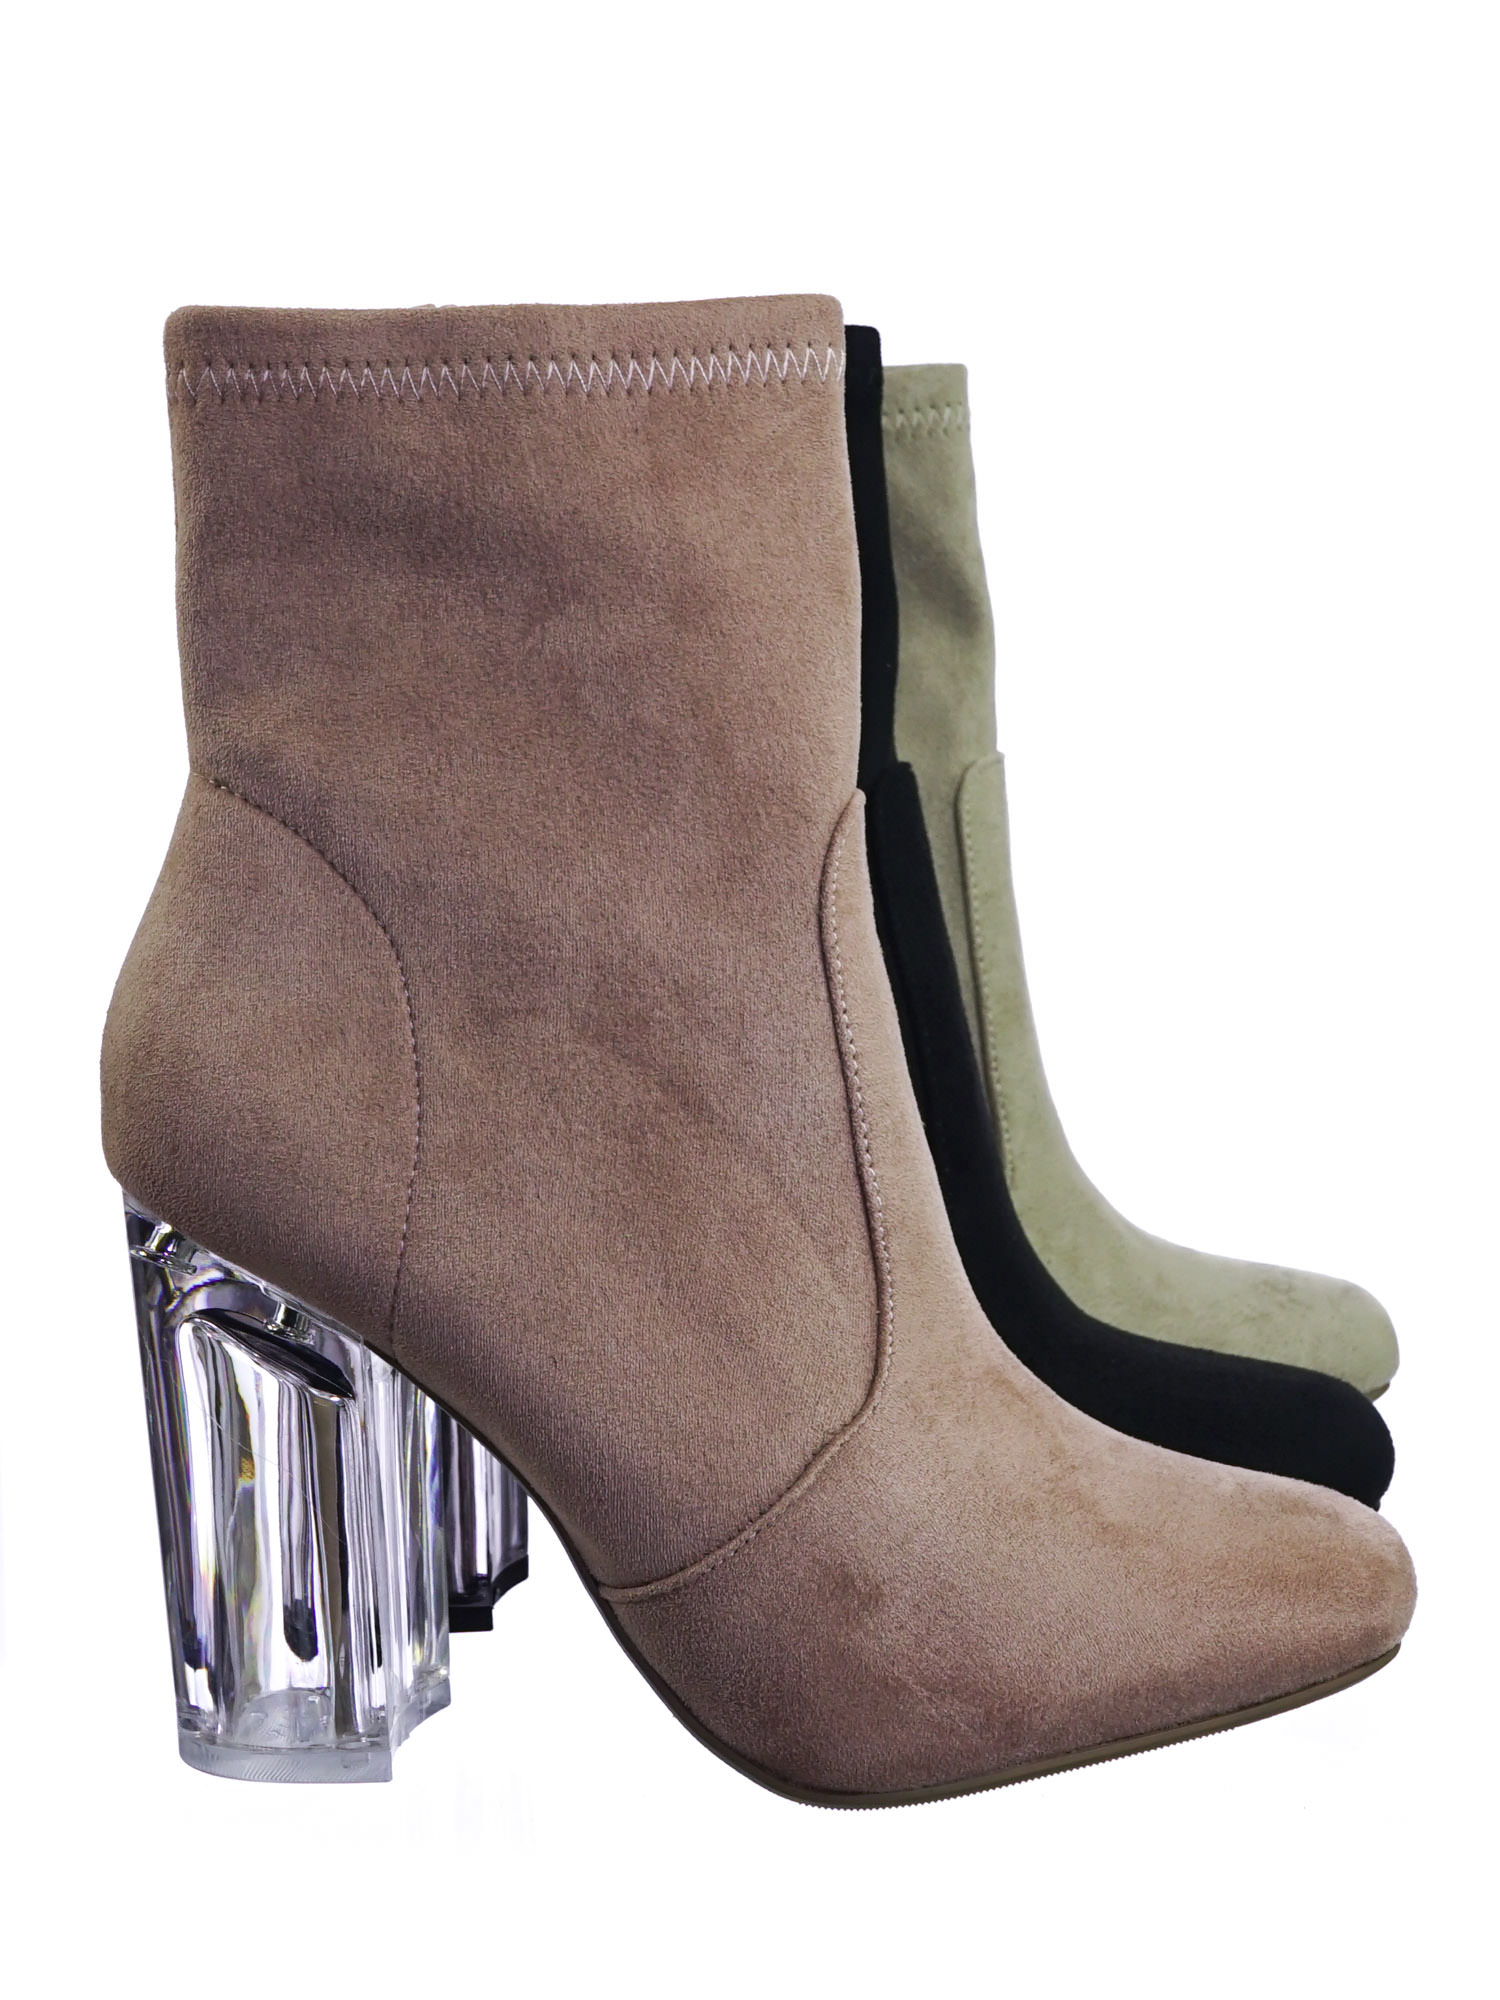 Linya by Speed Limit 98, Lucite Clear Chunky Block High Heel Dress Boots, Transparent